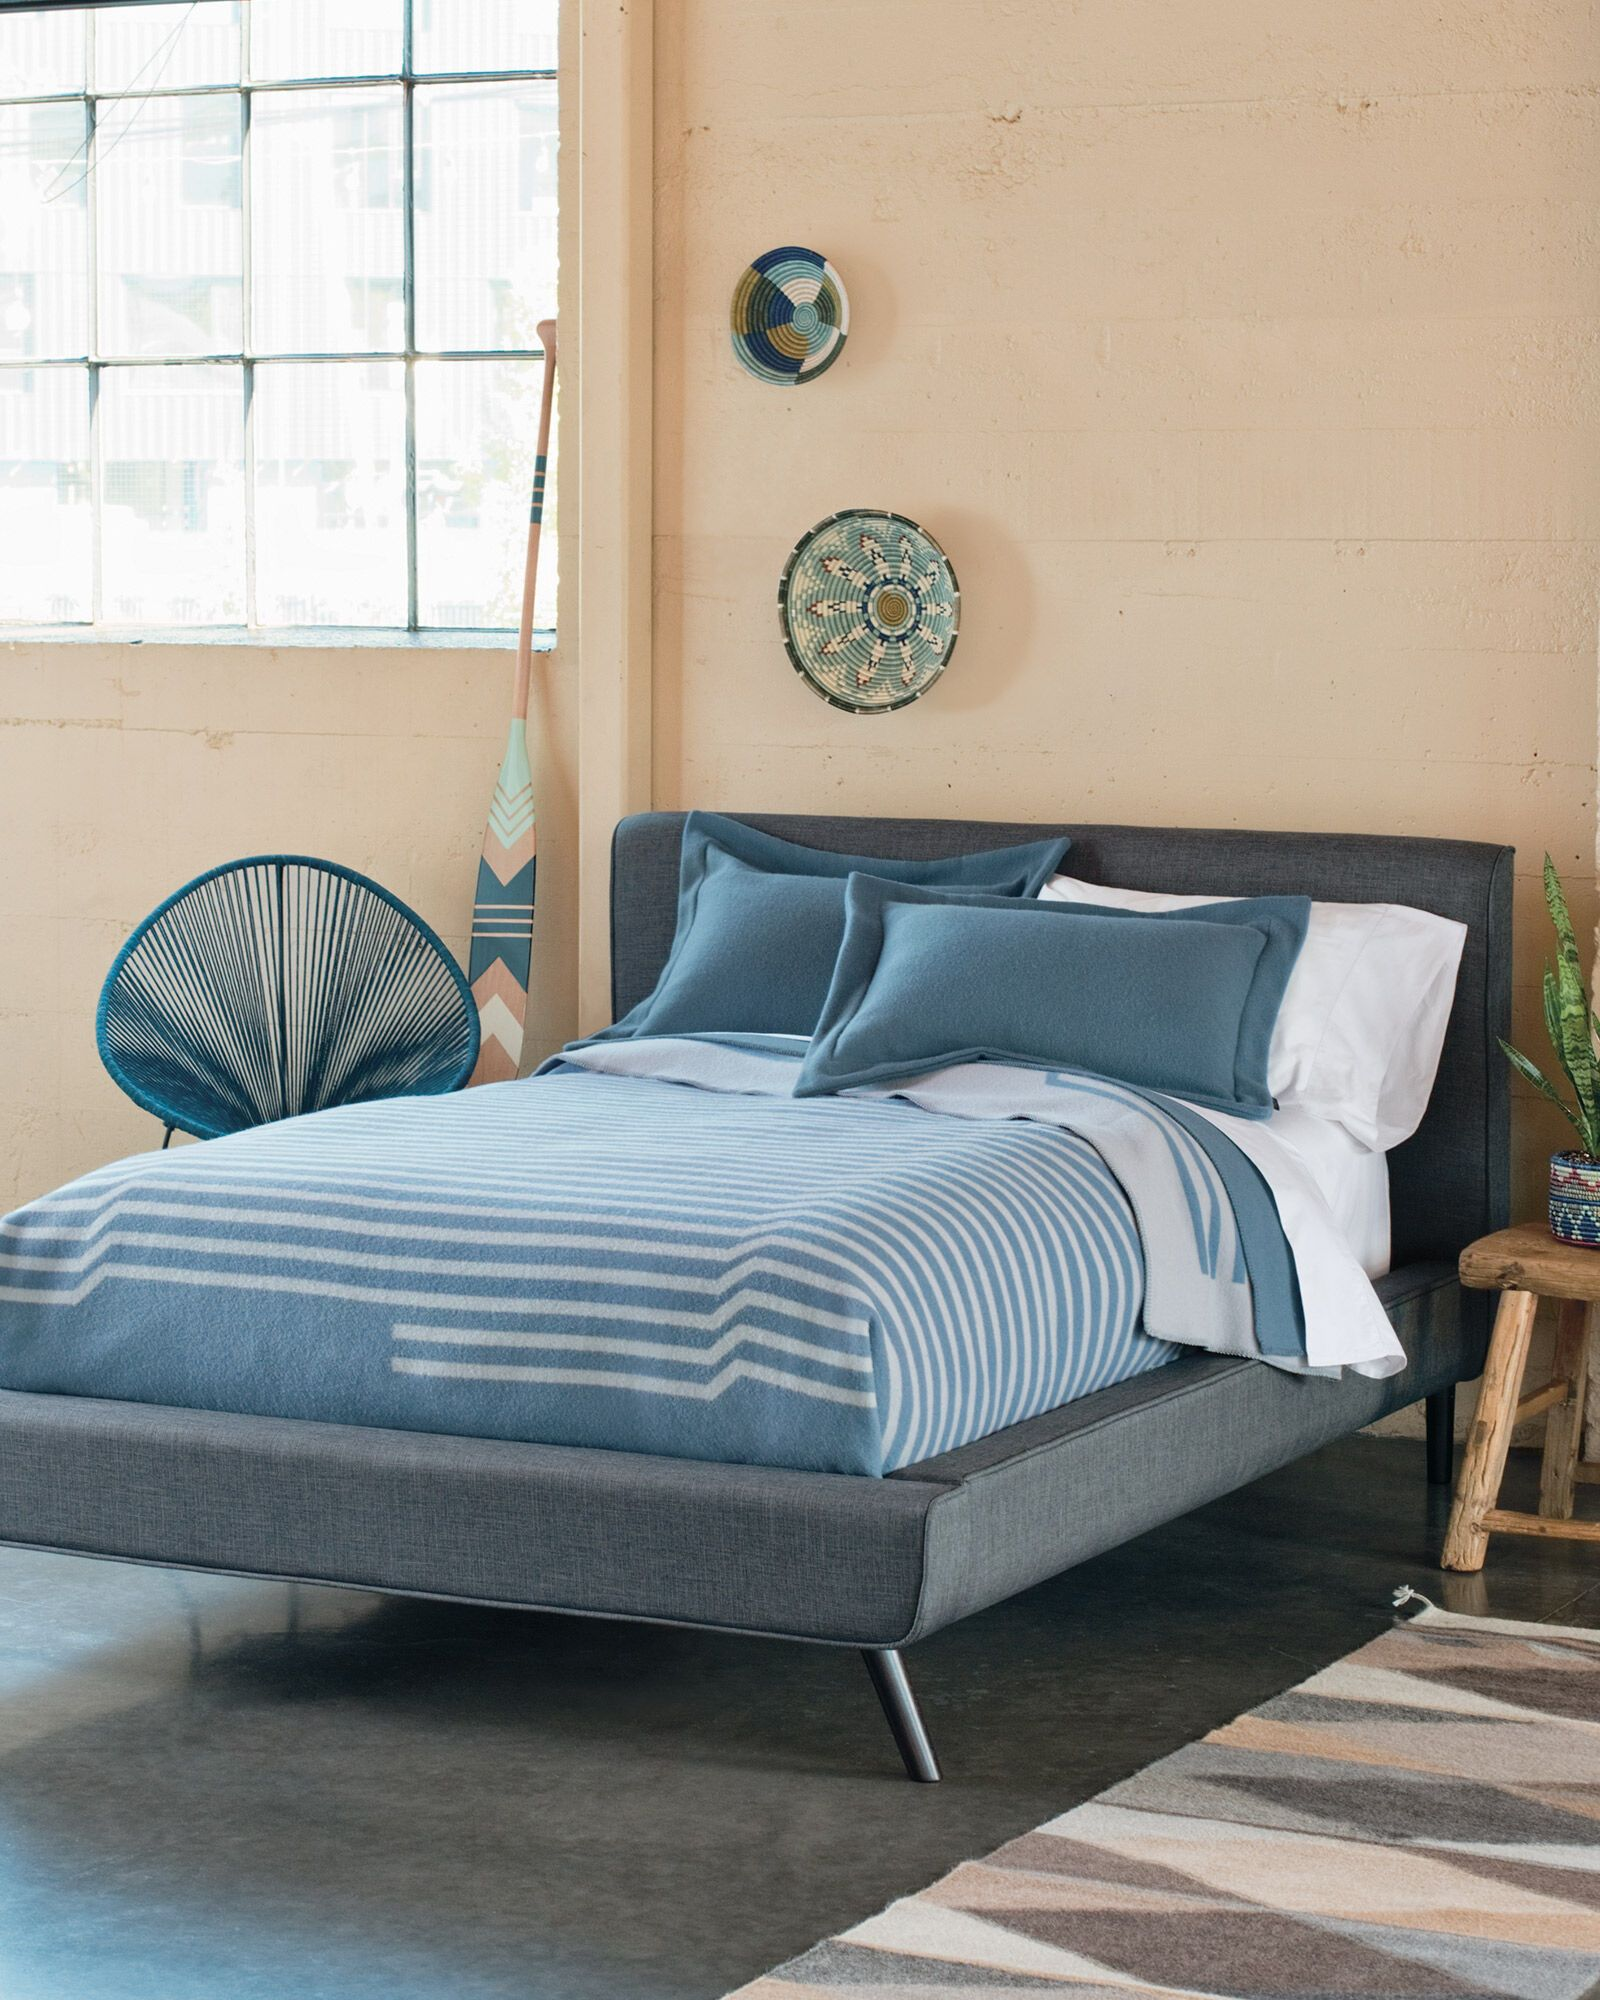 Reed blanket Online bedding stores, Most comfortable